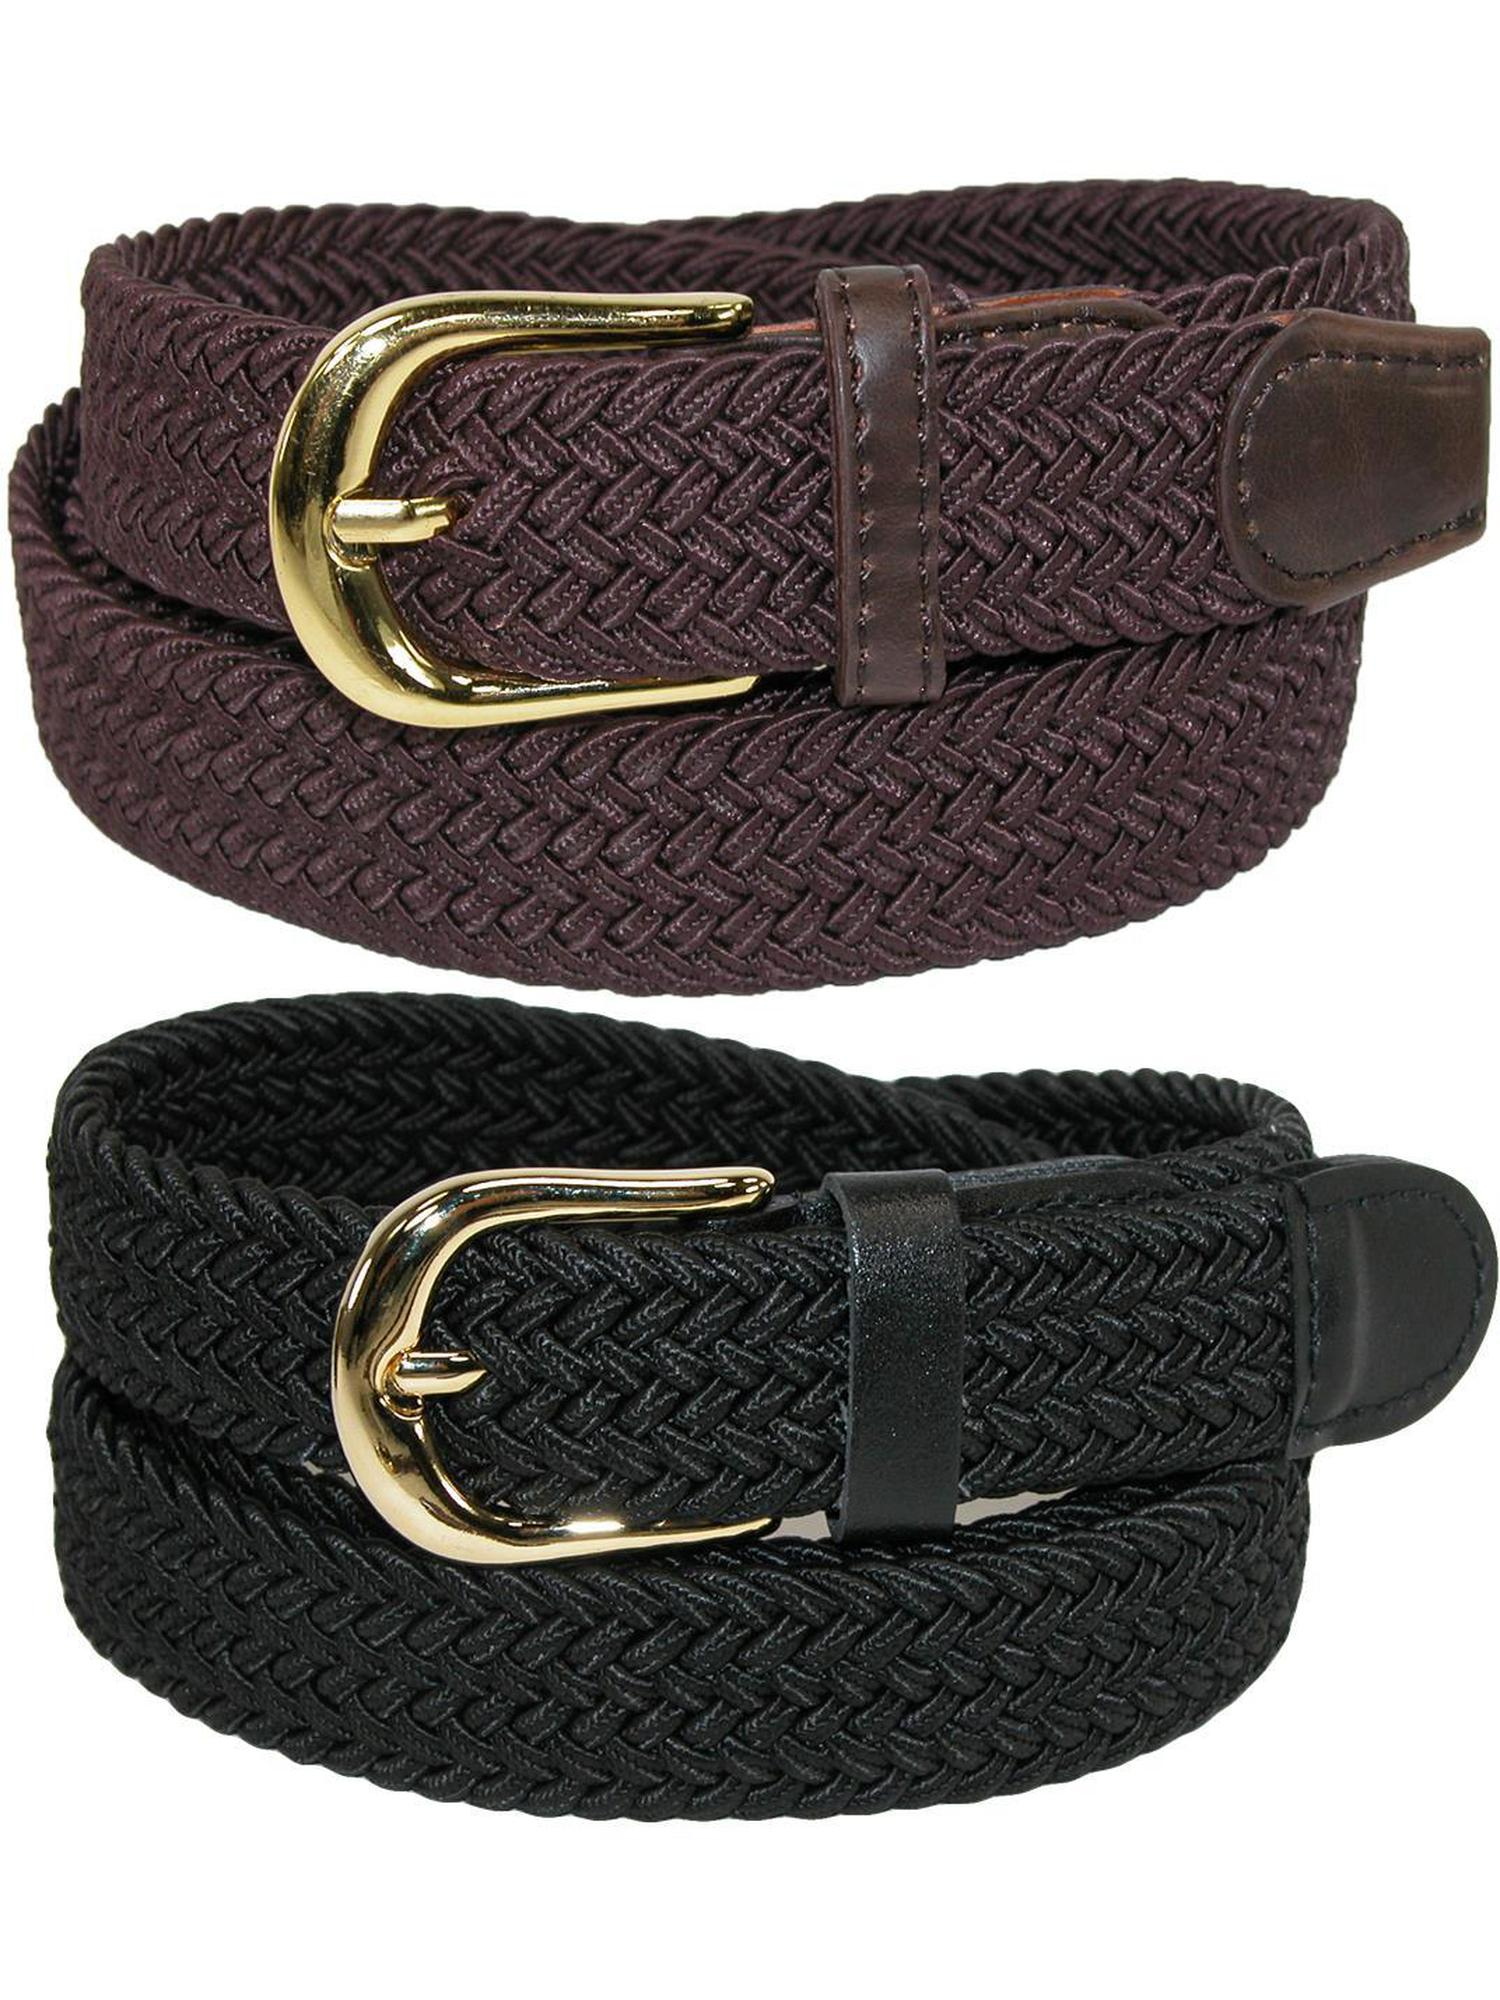 Women's Elastic Braided Stretch Belt (Pack of 2 Colors)